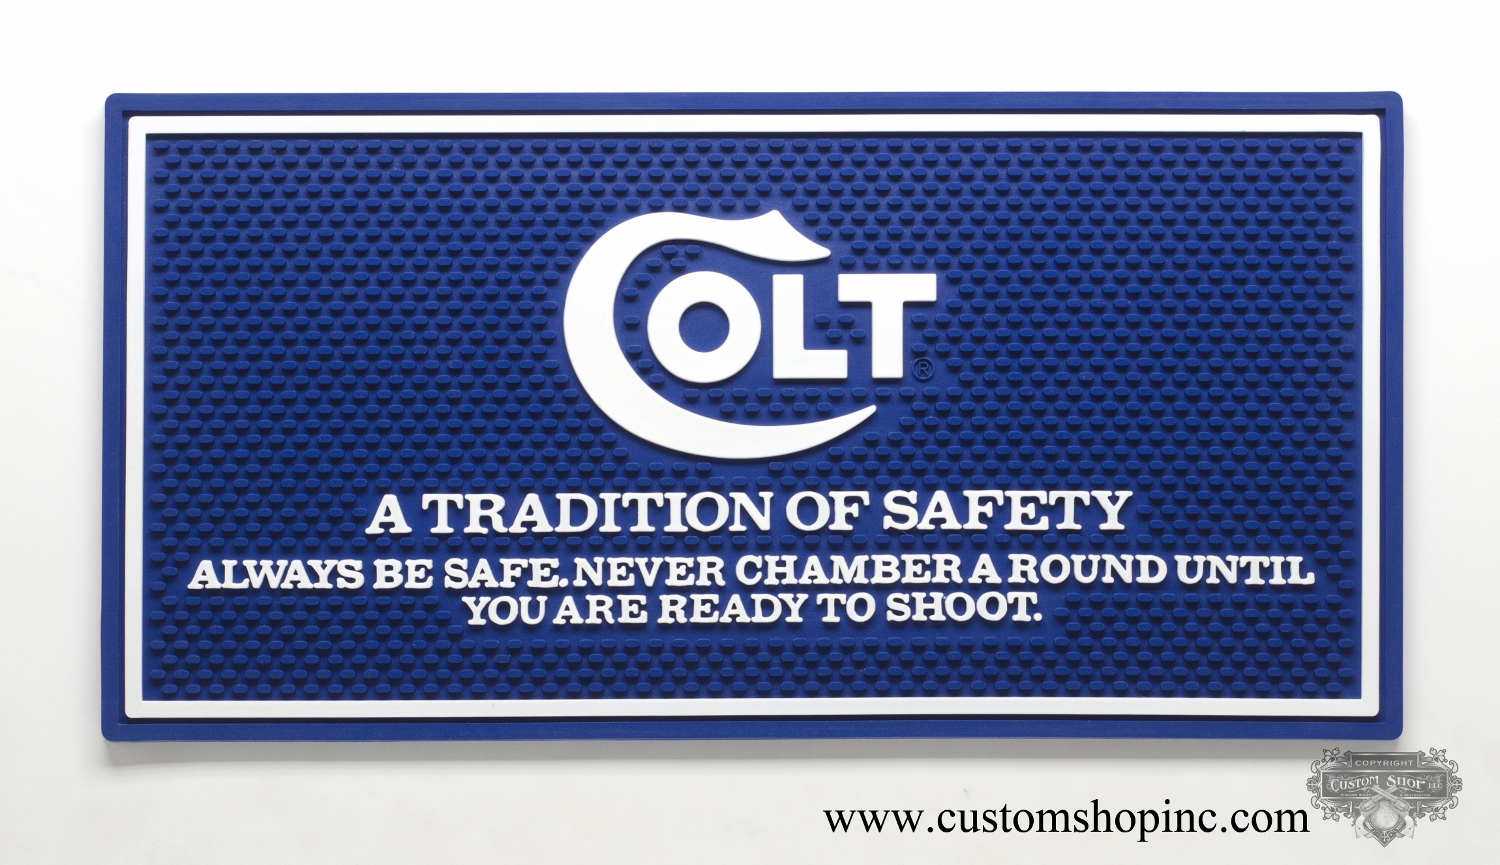 BLUE_WHITE COLT SERPENT LOGO BAR MATS_A (1500x865)